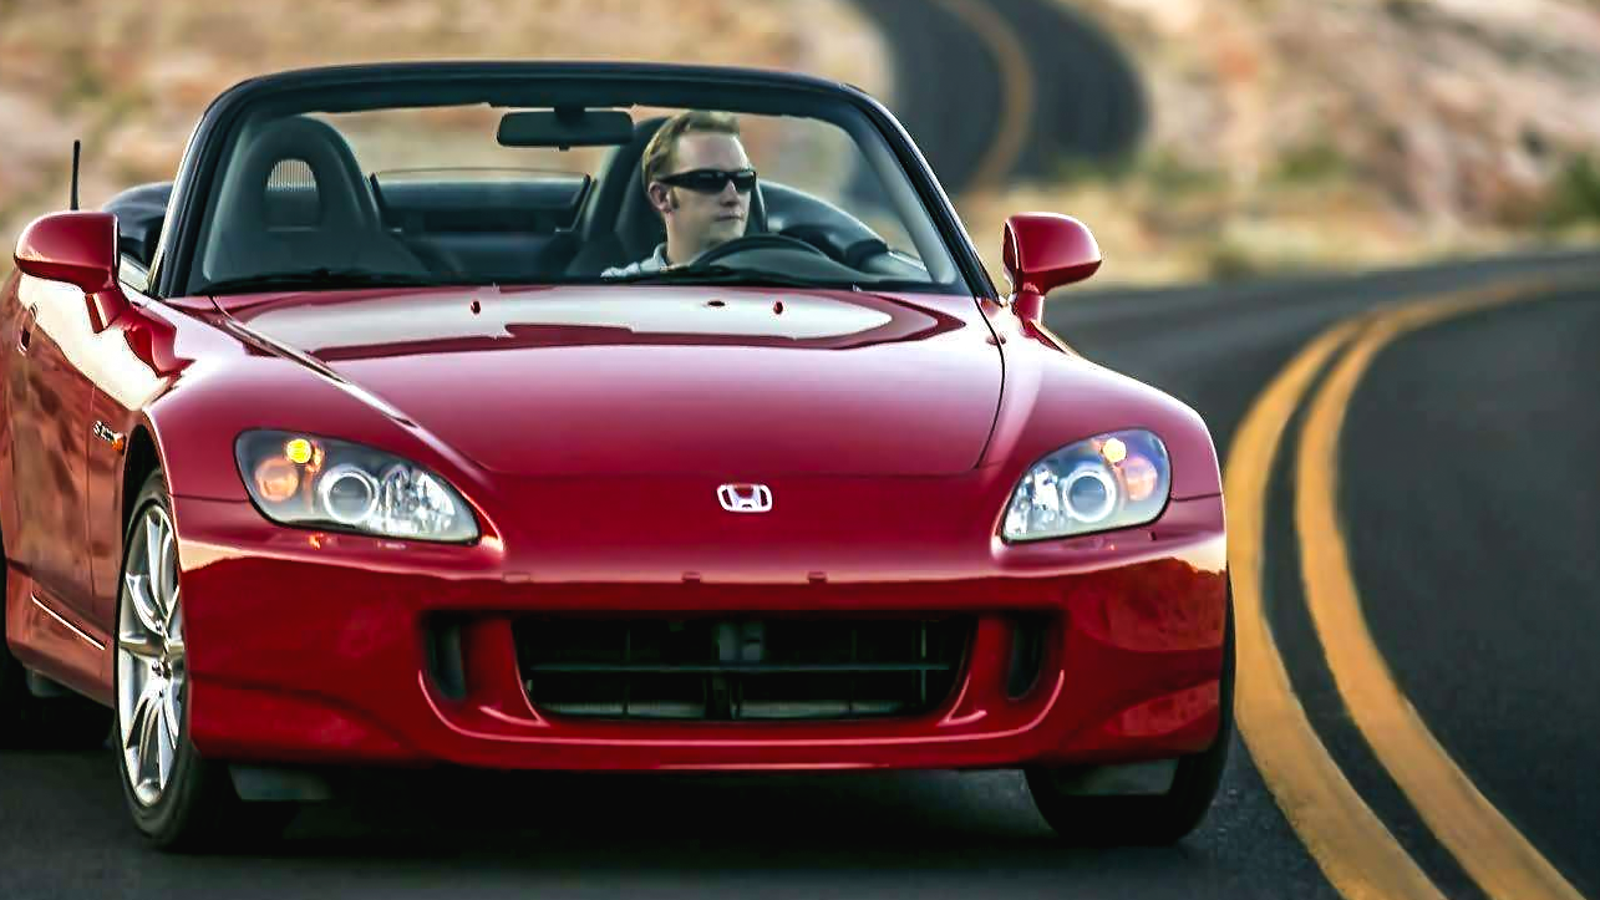 Ten Of The Fastest Japanese Cars On eBay For Less Than $10,000